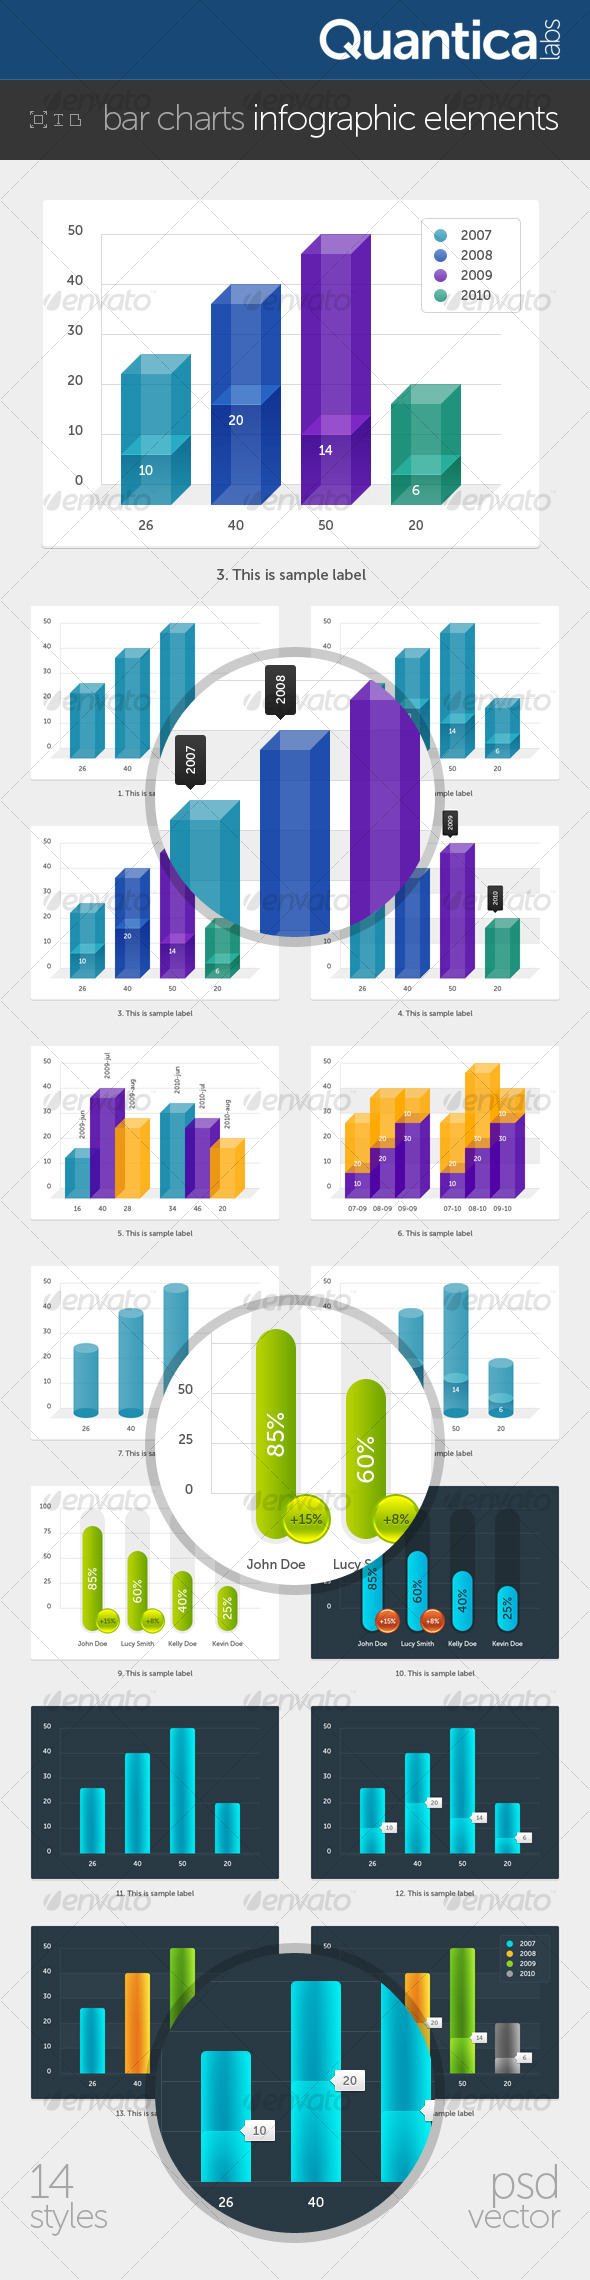 Bar Charts Infographic Elements - Infographics